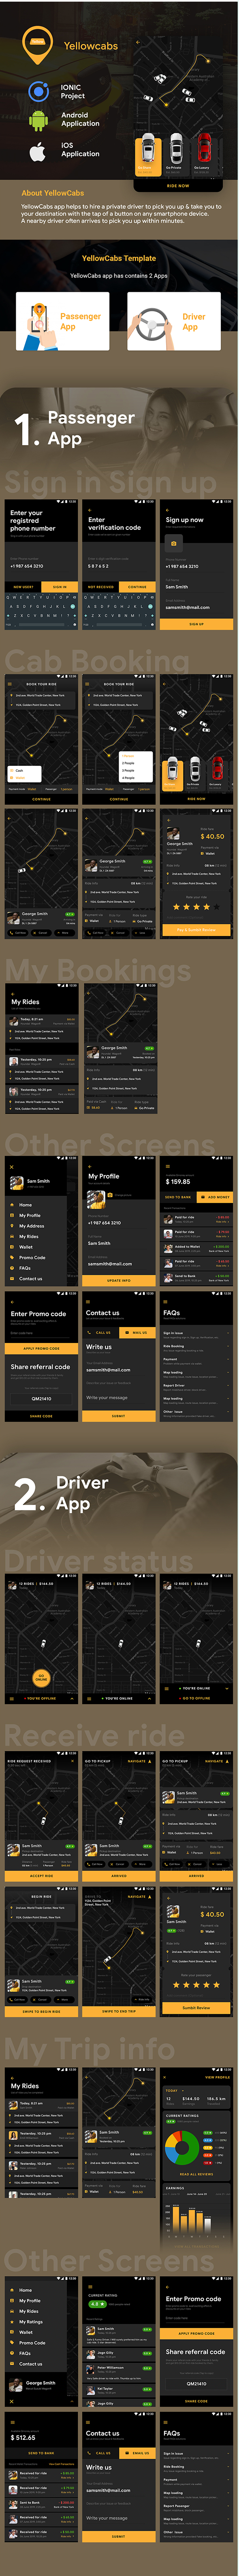 Cab Booking Android + iOS App Template |2 Apps| Rider App + Driver App |Taxi App| IONIC3 |YellowCabs - 1